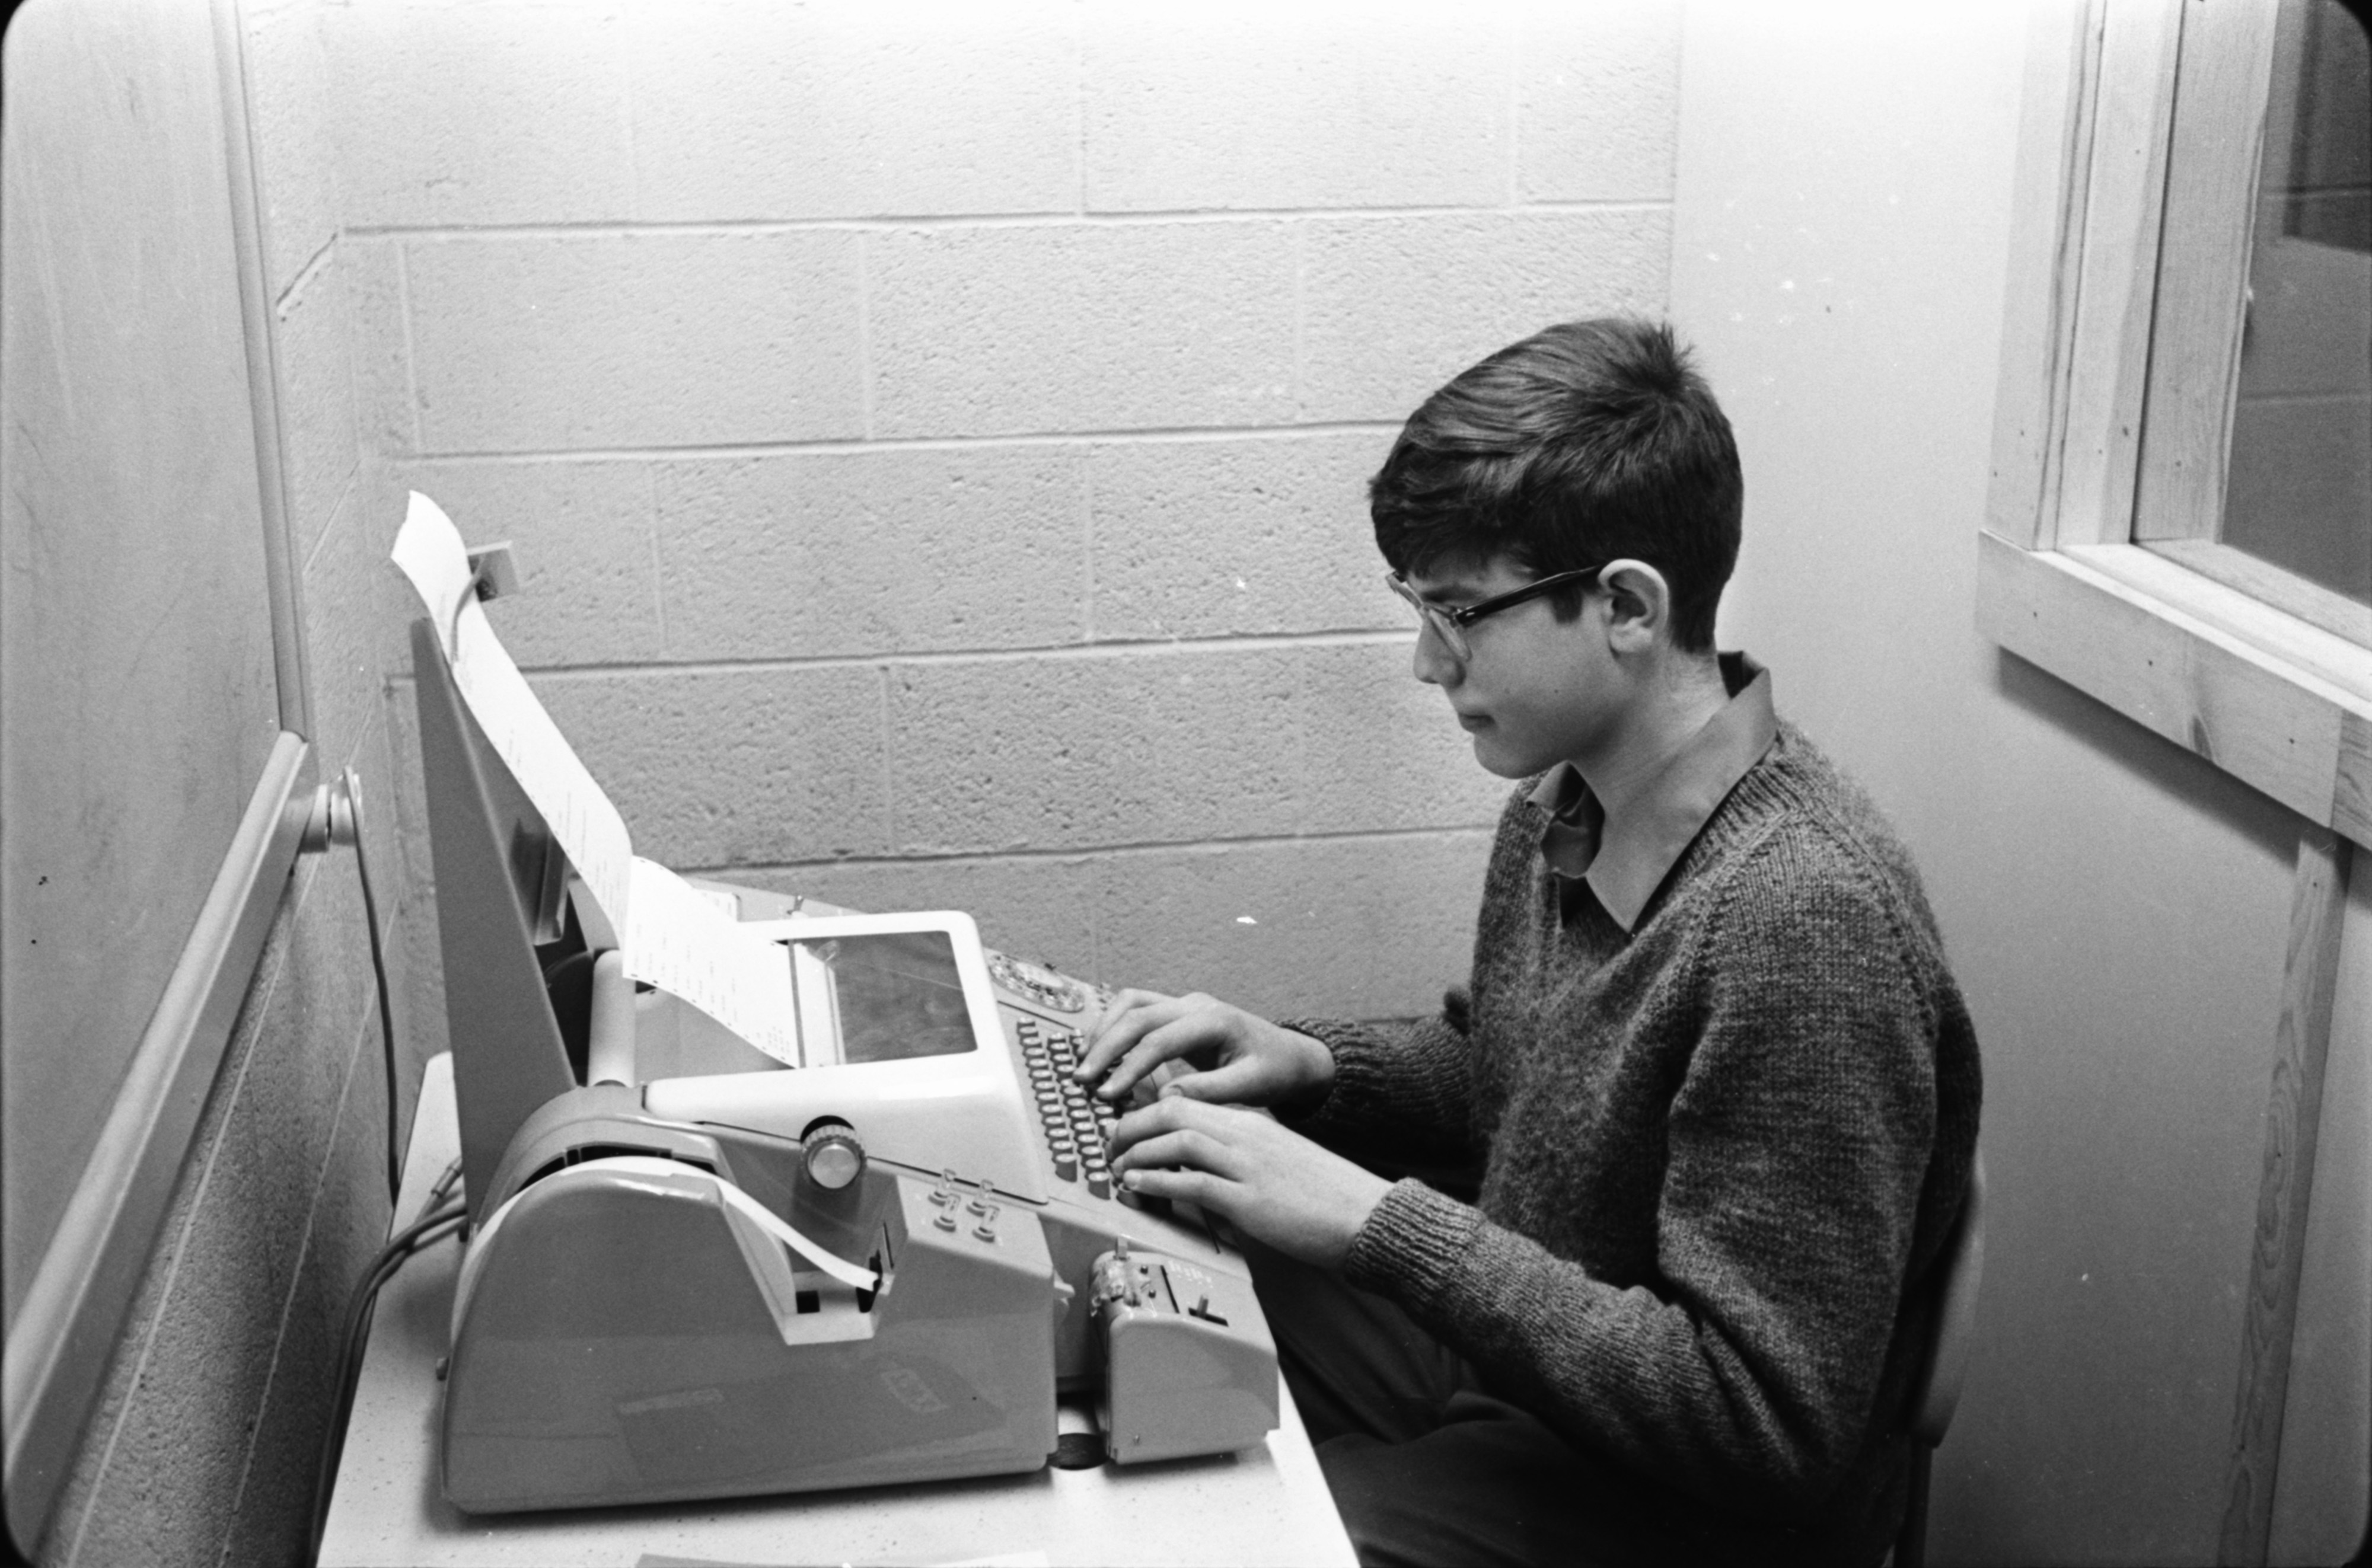 Computer Math Course at Ann Arbor High School, October 1968 image